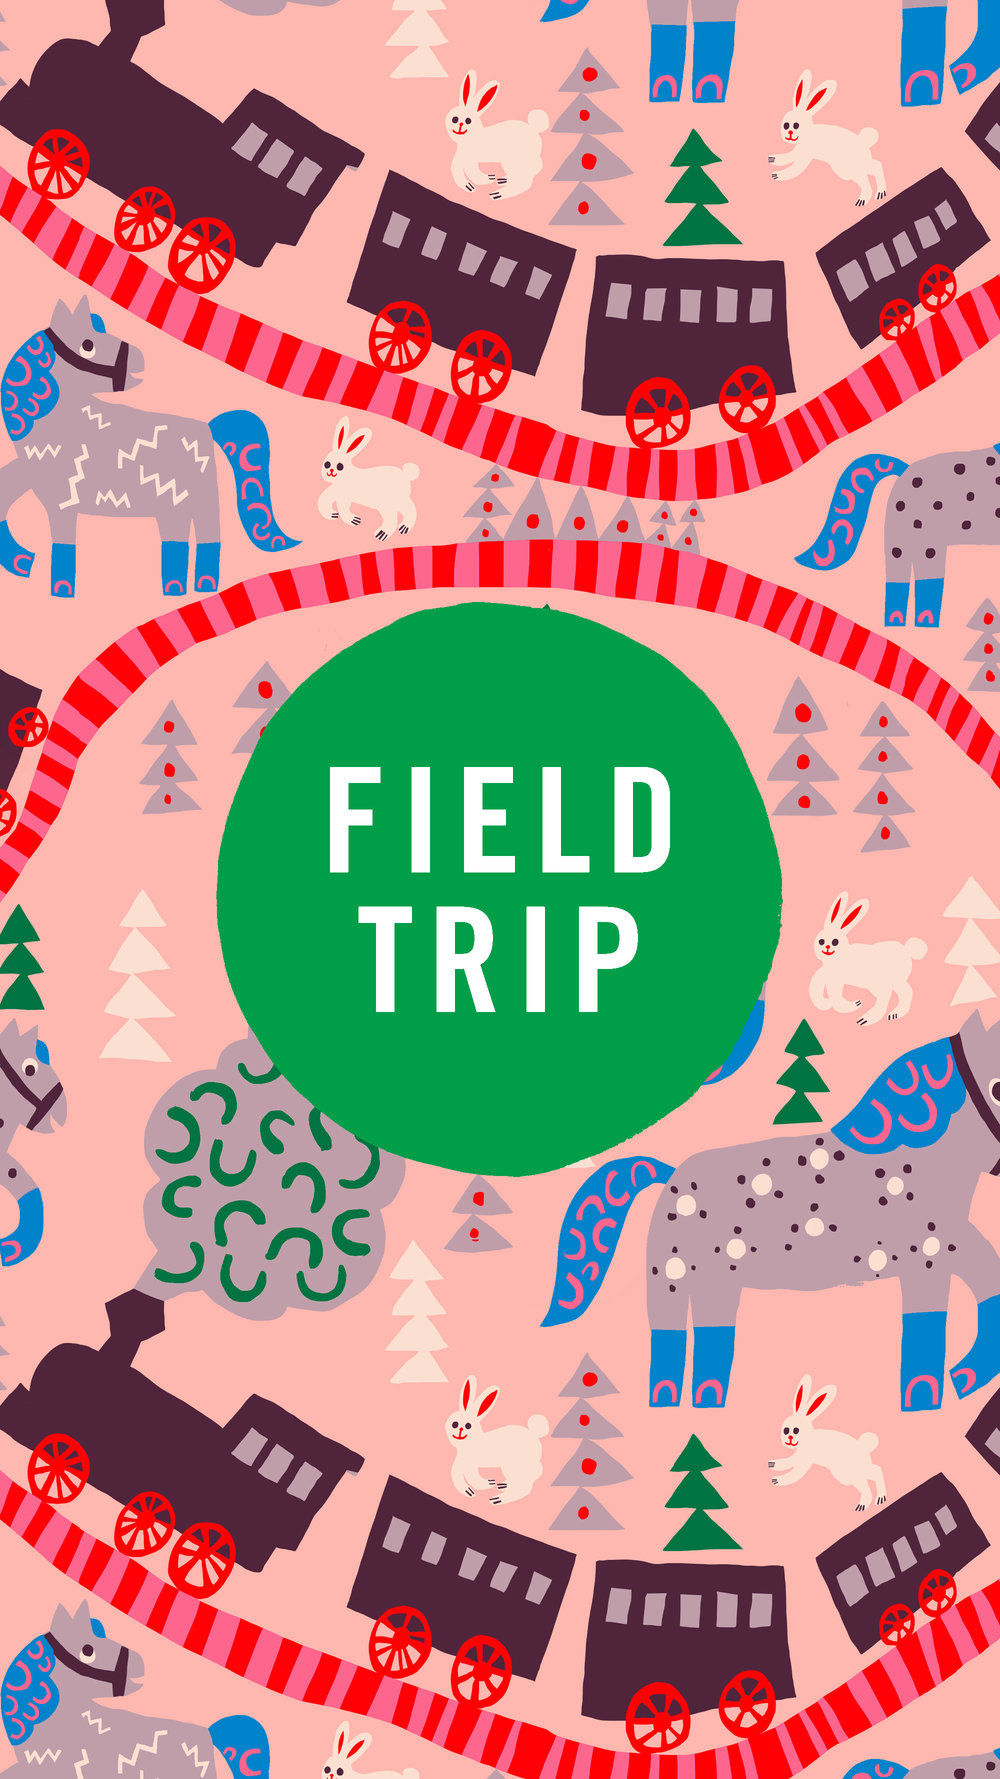 FIELDTRIP 2019 - I will be back in New York together with 11 other artists for the Art & Illustration show that takes place in New York on May 20th. .Companies and art directors > feel free to request your invite through fieldtripshow.com